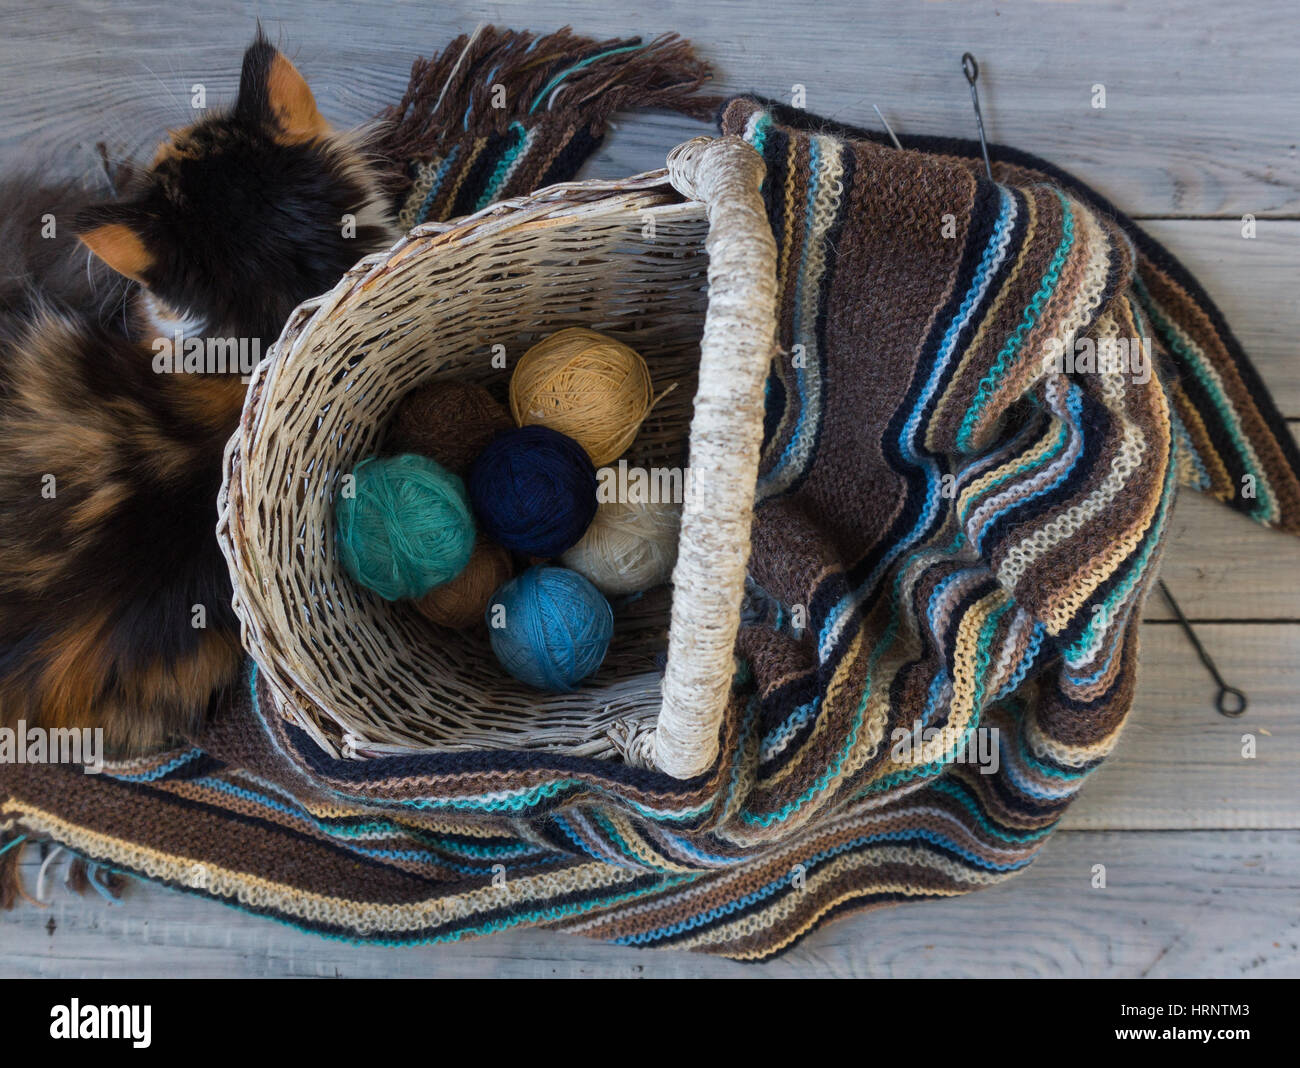 Knitted woolen scarf and yarn balls in a wicker basket on a wooden surface. Nearby lies fluffy cat - Stock Image